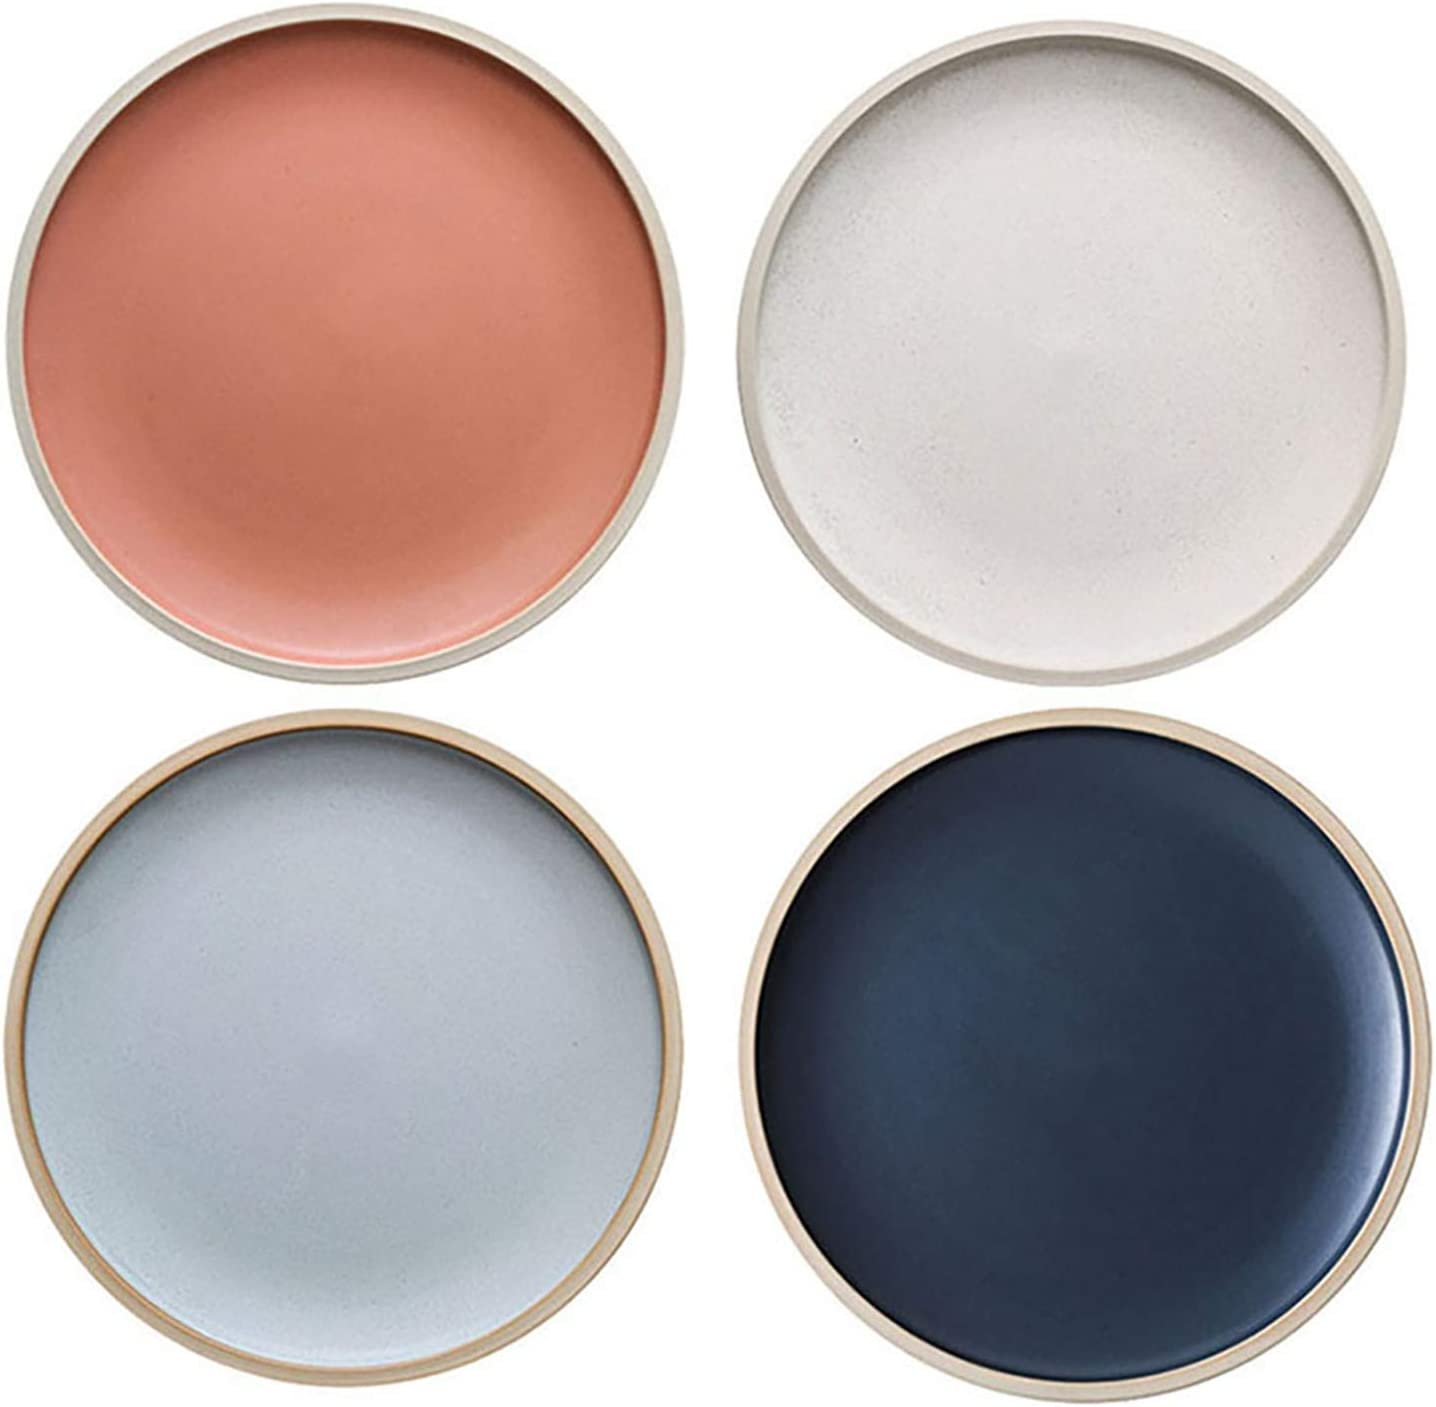 MDZF SWEET HOME 10.4-Inch Porcelain Tampa Mall Max 76% OFF Ser Pasta Dinner Set Plates